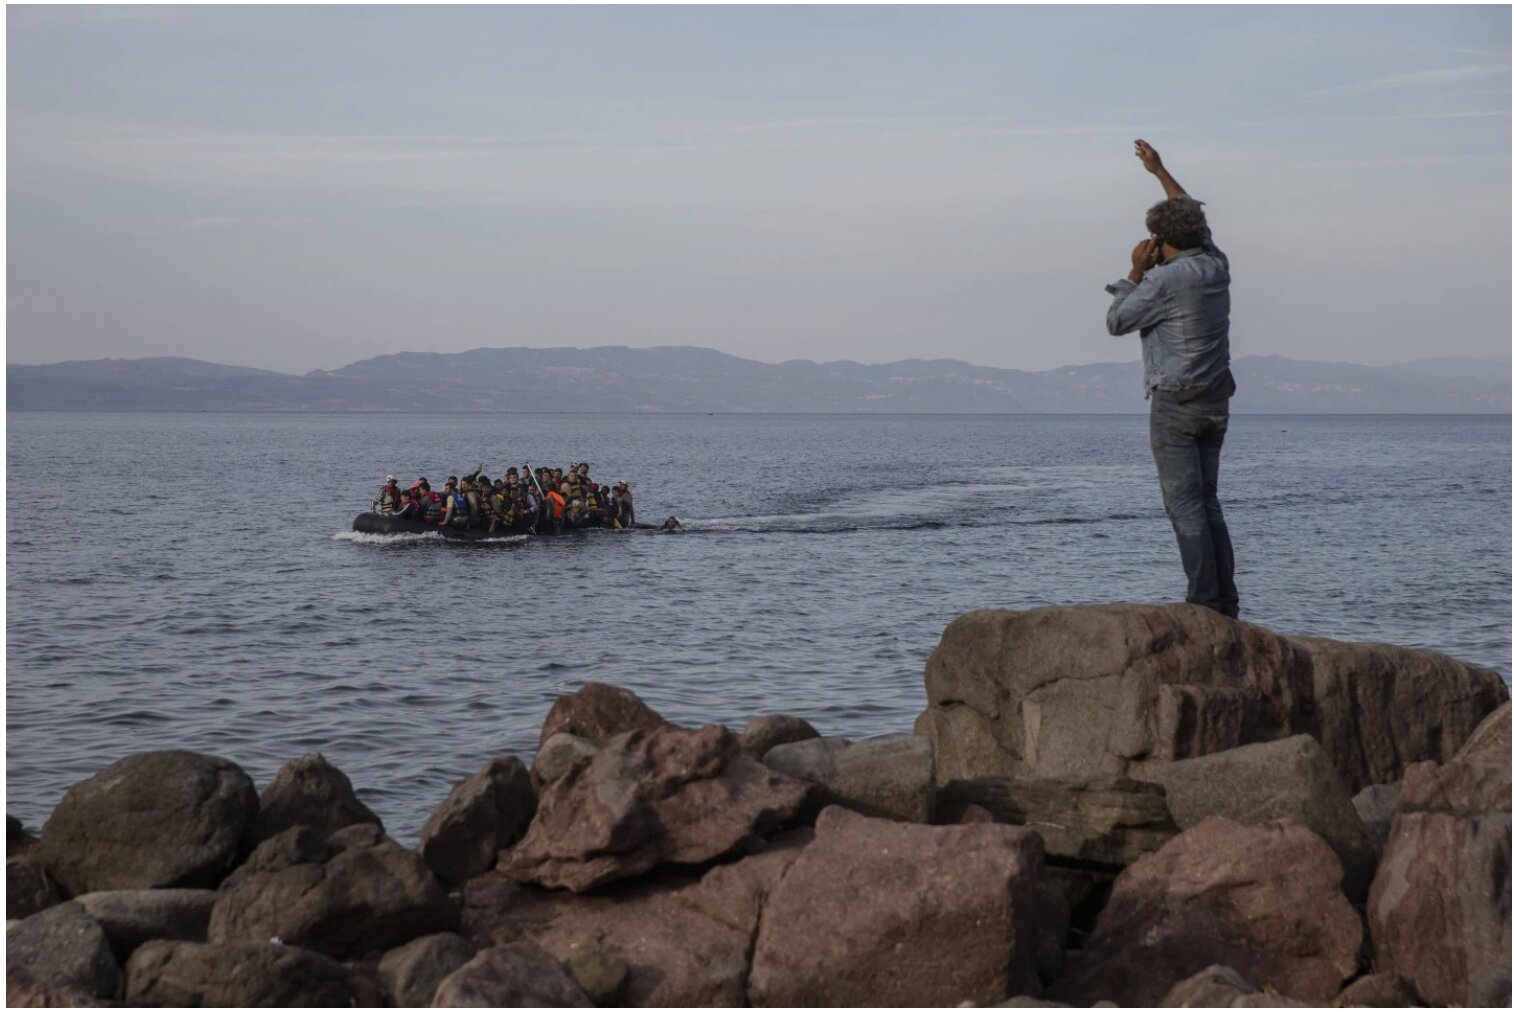 Greece plans floating border barrier to stop migrants